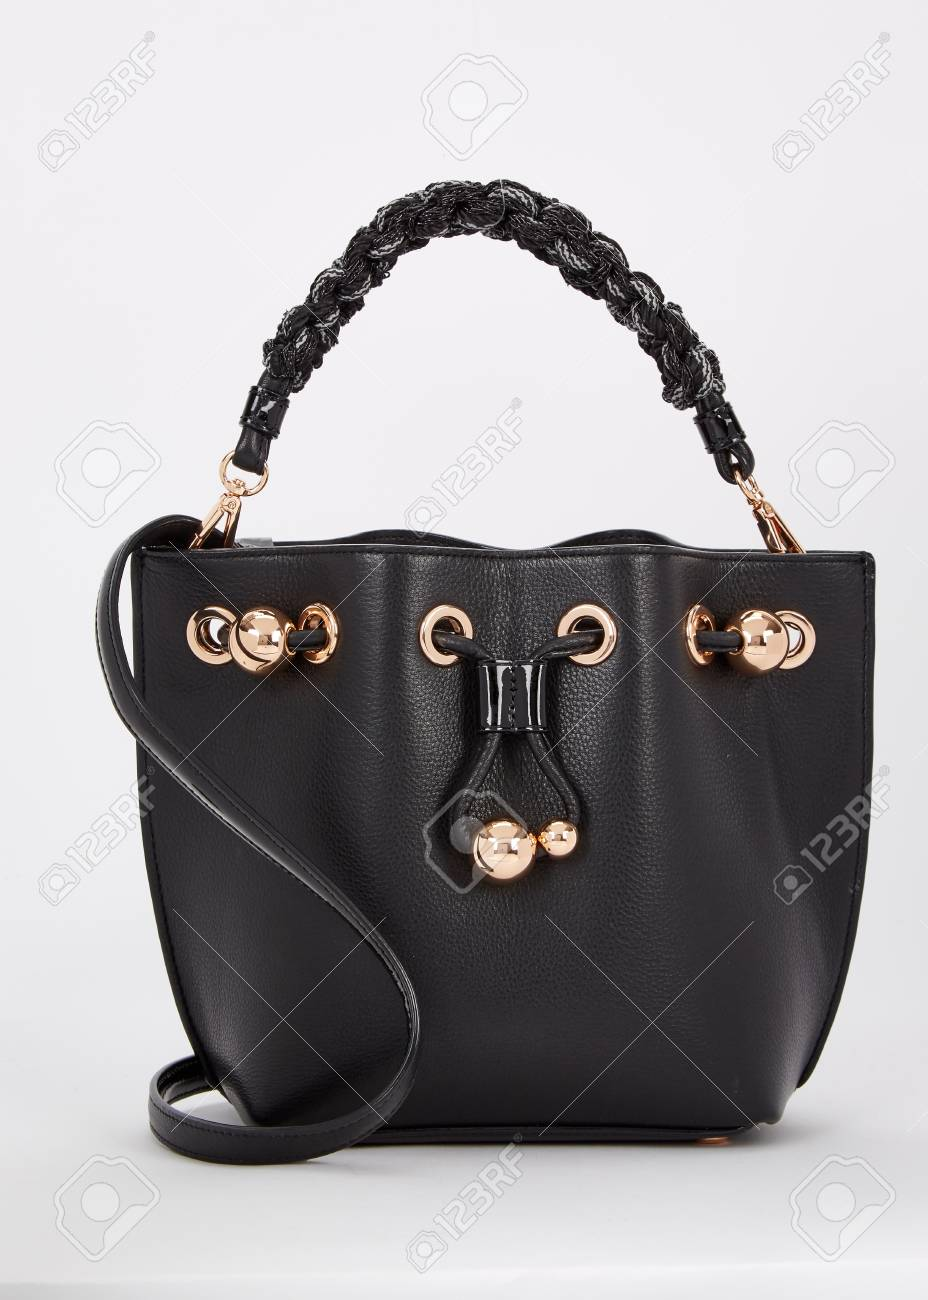 61d77fa08e3f New Michael Kors Fulton Large Bag Shoulder Hobo Pebbled Leather Black Handbag  Stock Photo - 92772735